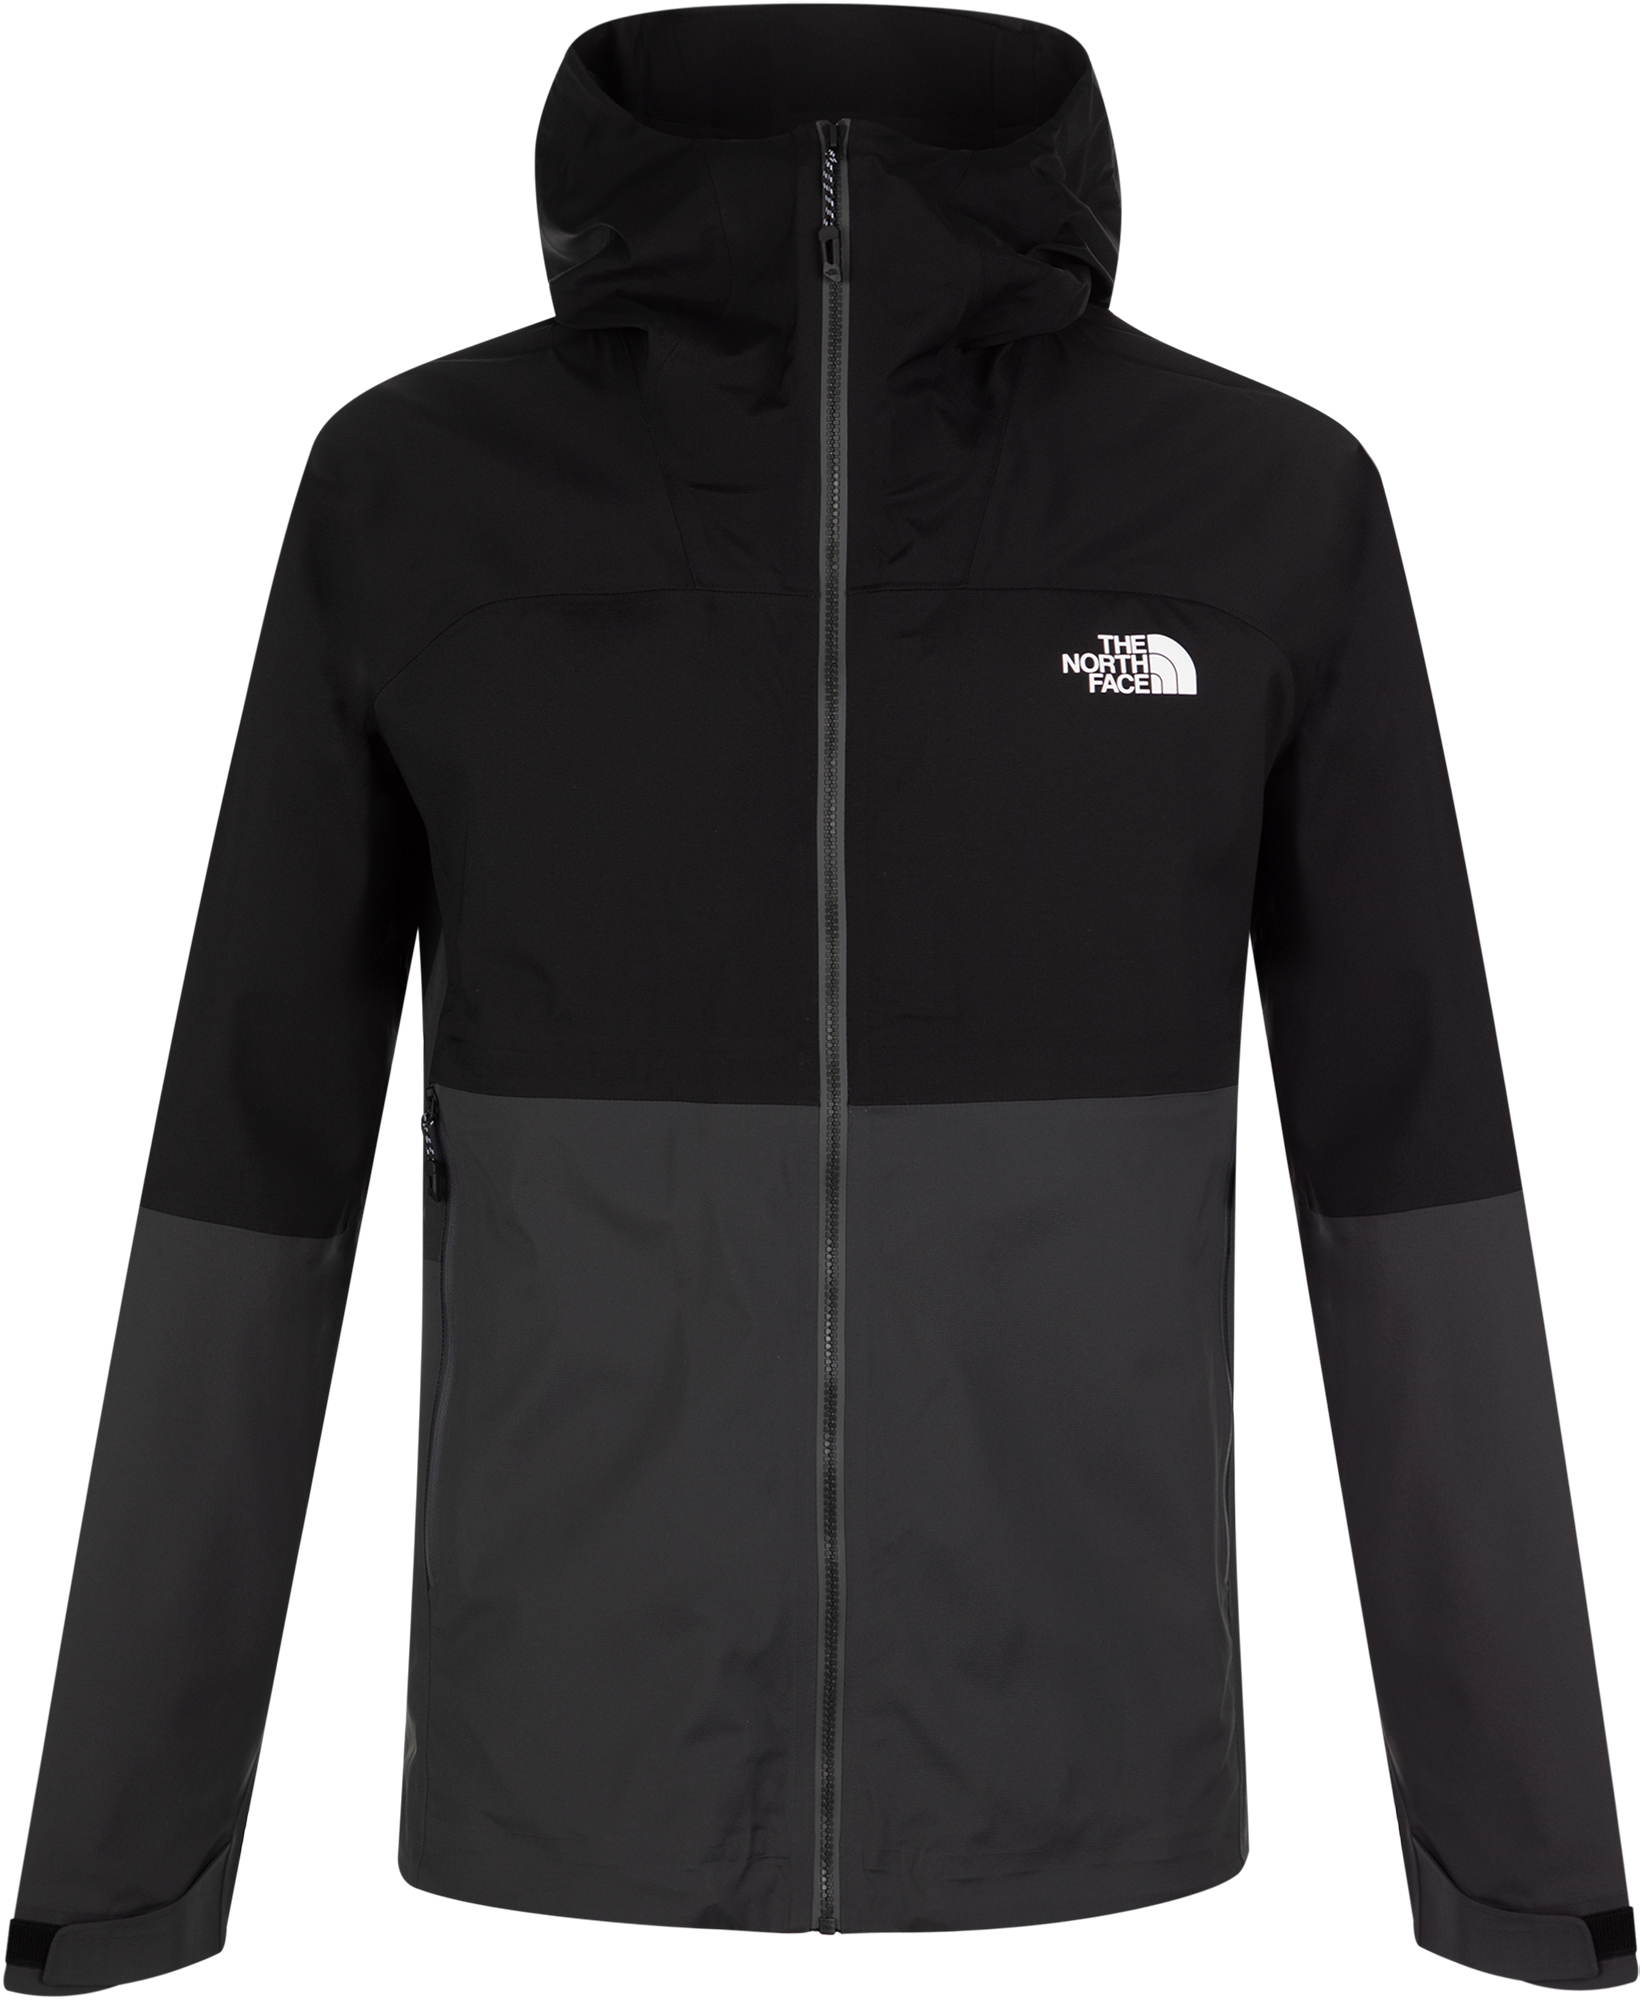 The North Face Ветровка мужская The North Face Impendor FutureLight™, размер 48